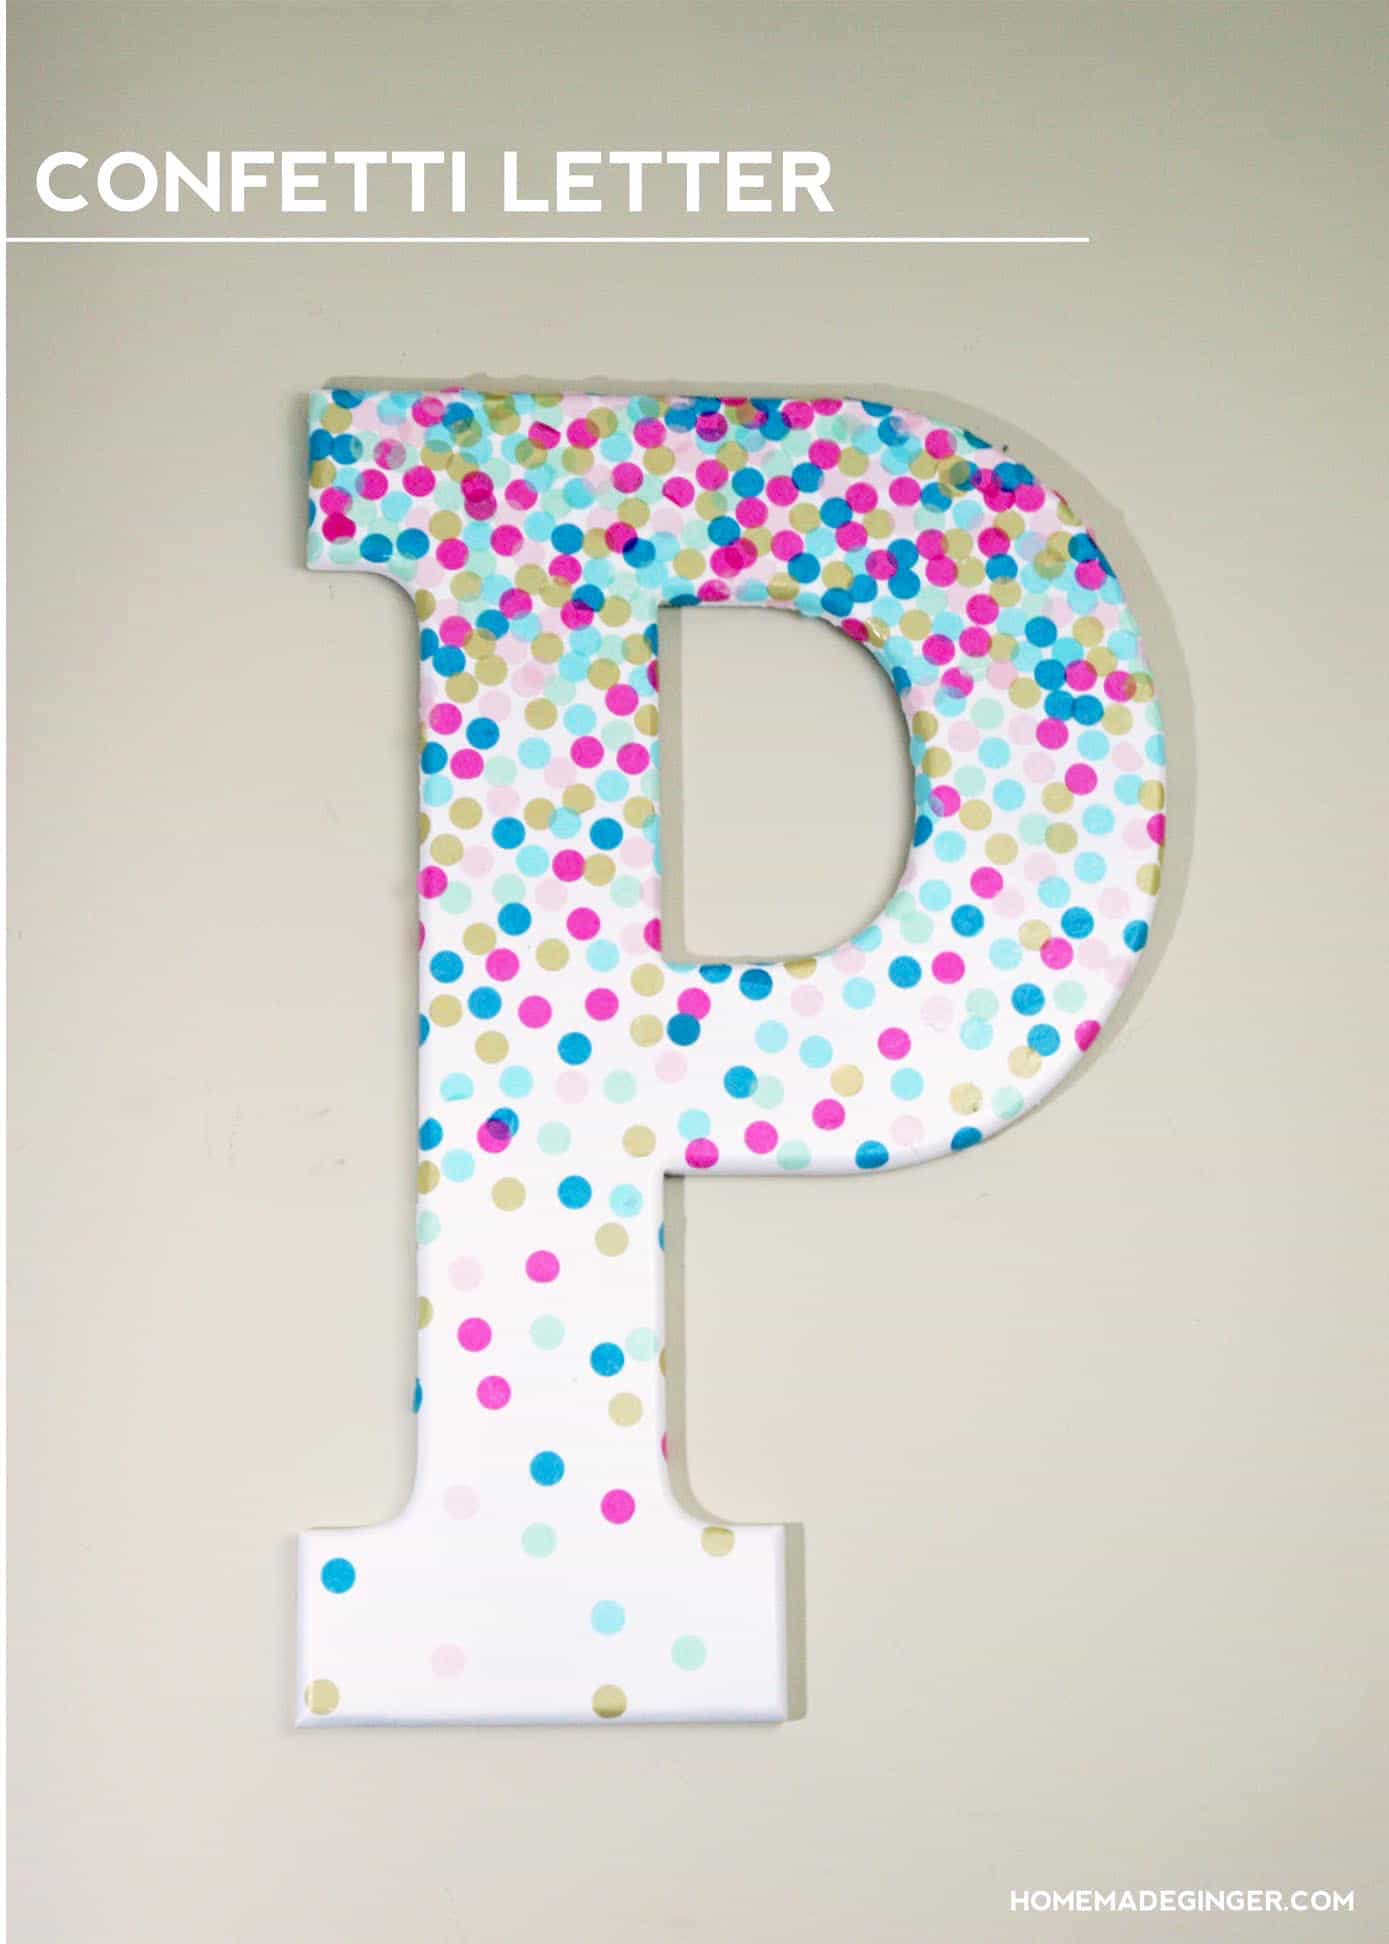 Confetti decorative letters for wall decor mod podge rocks for Letter n decorations